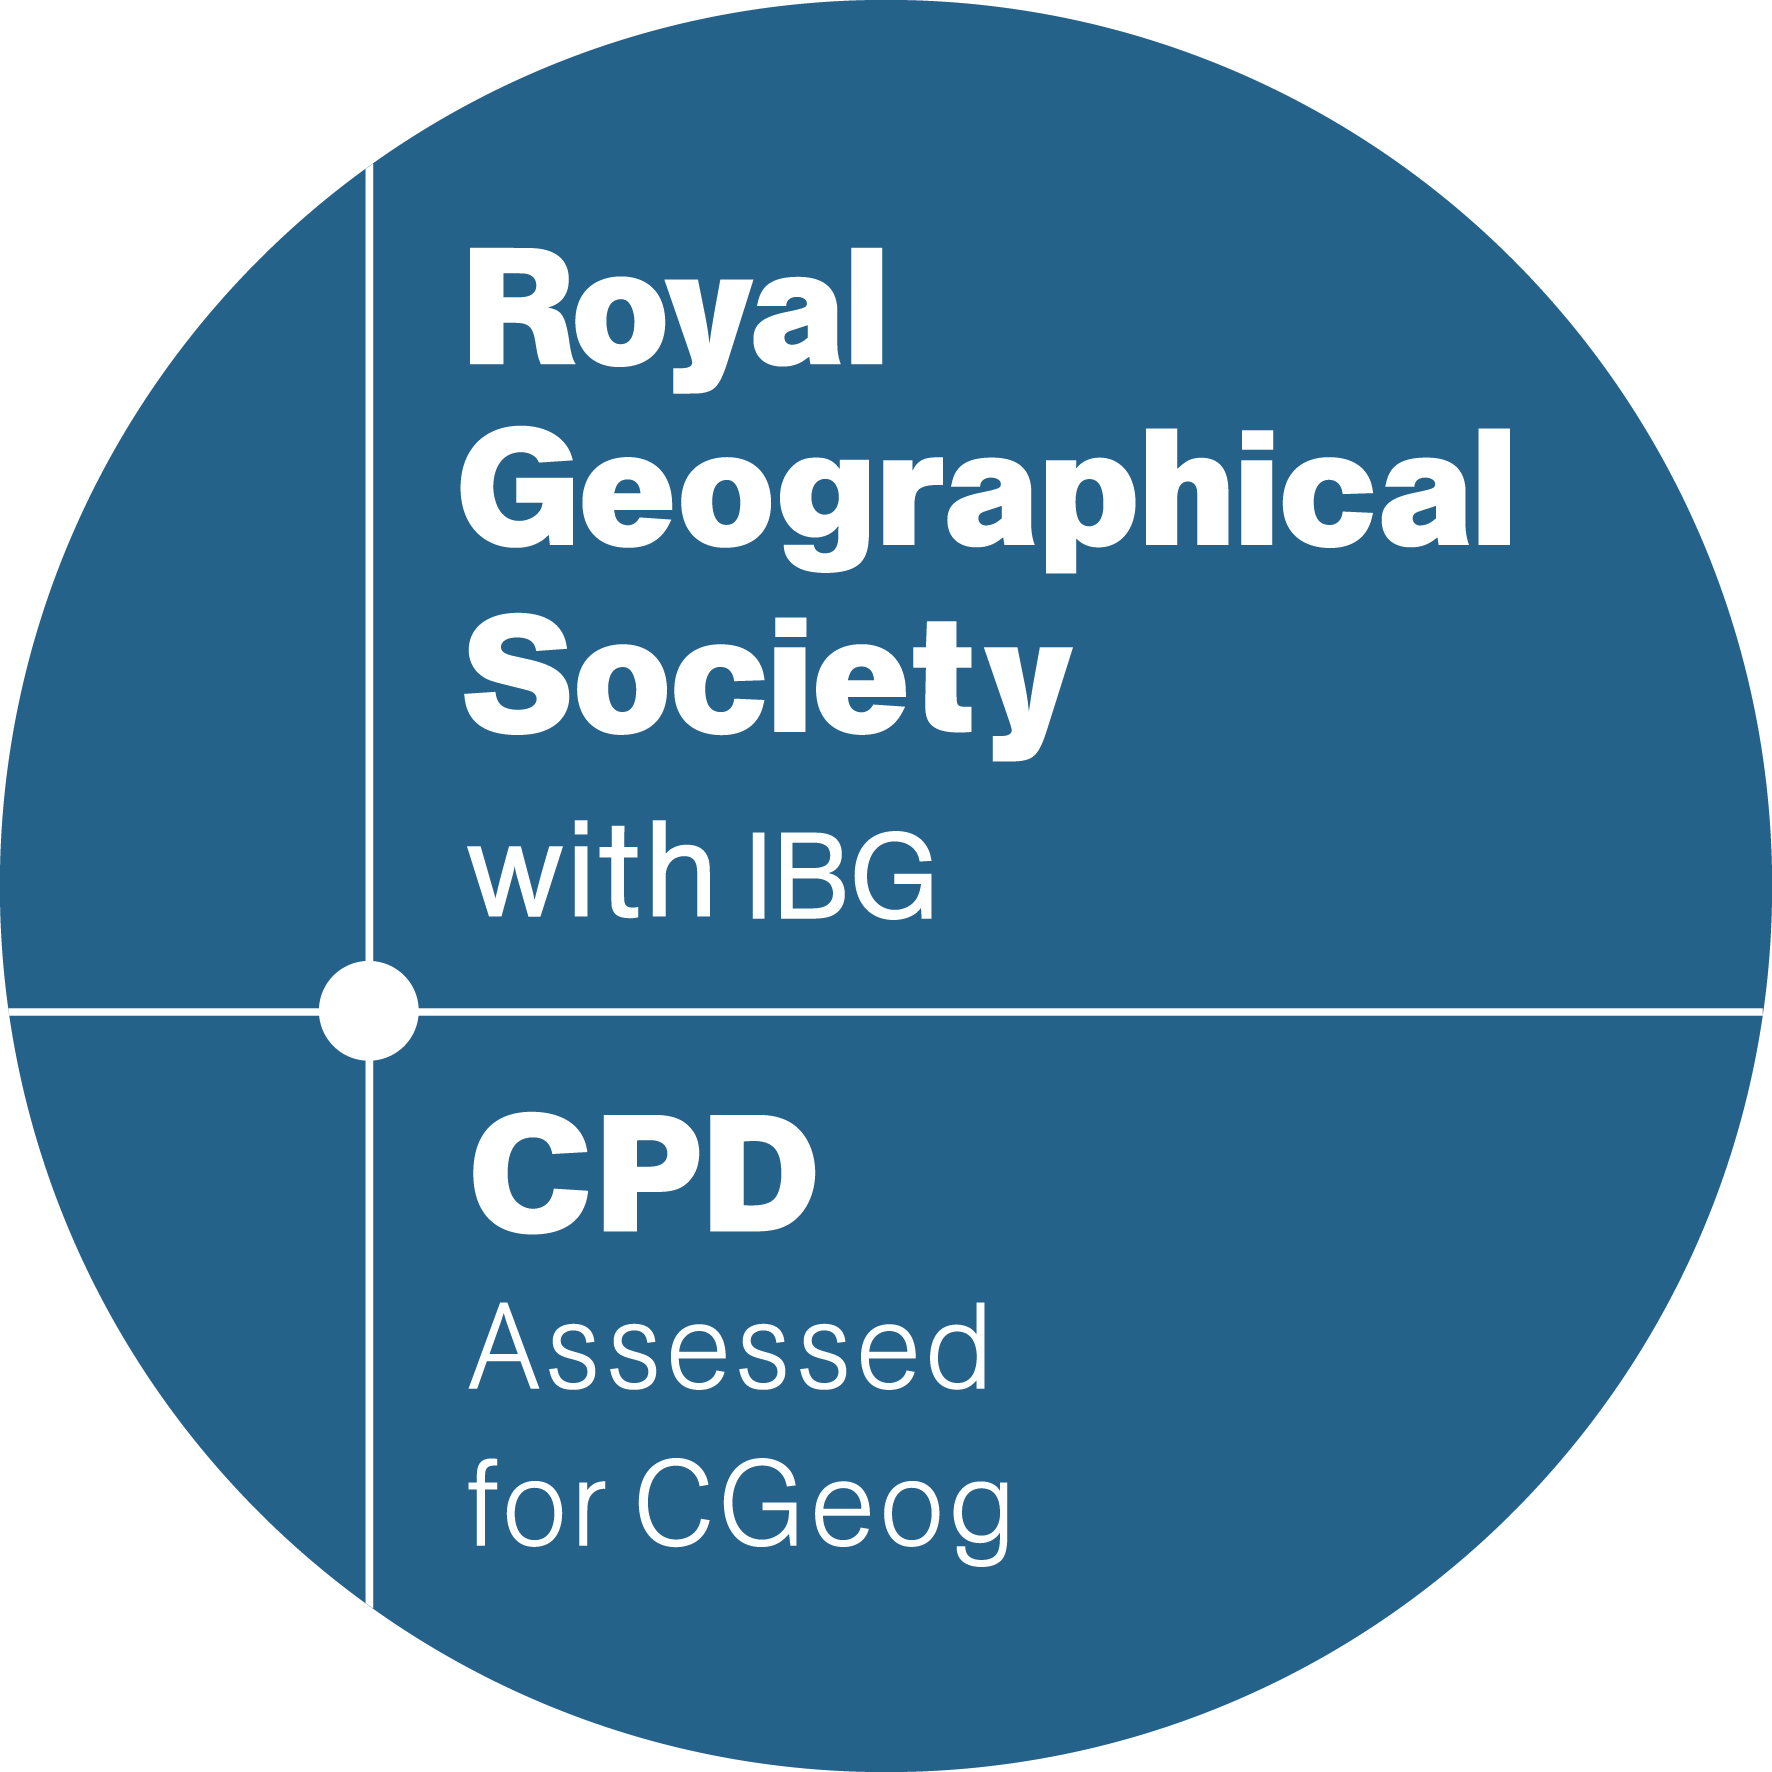 RGS CPD